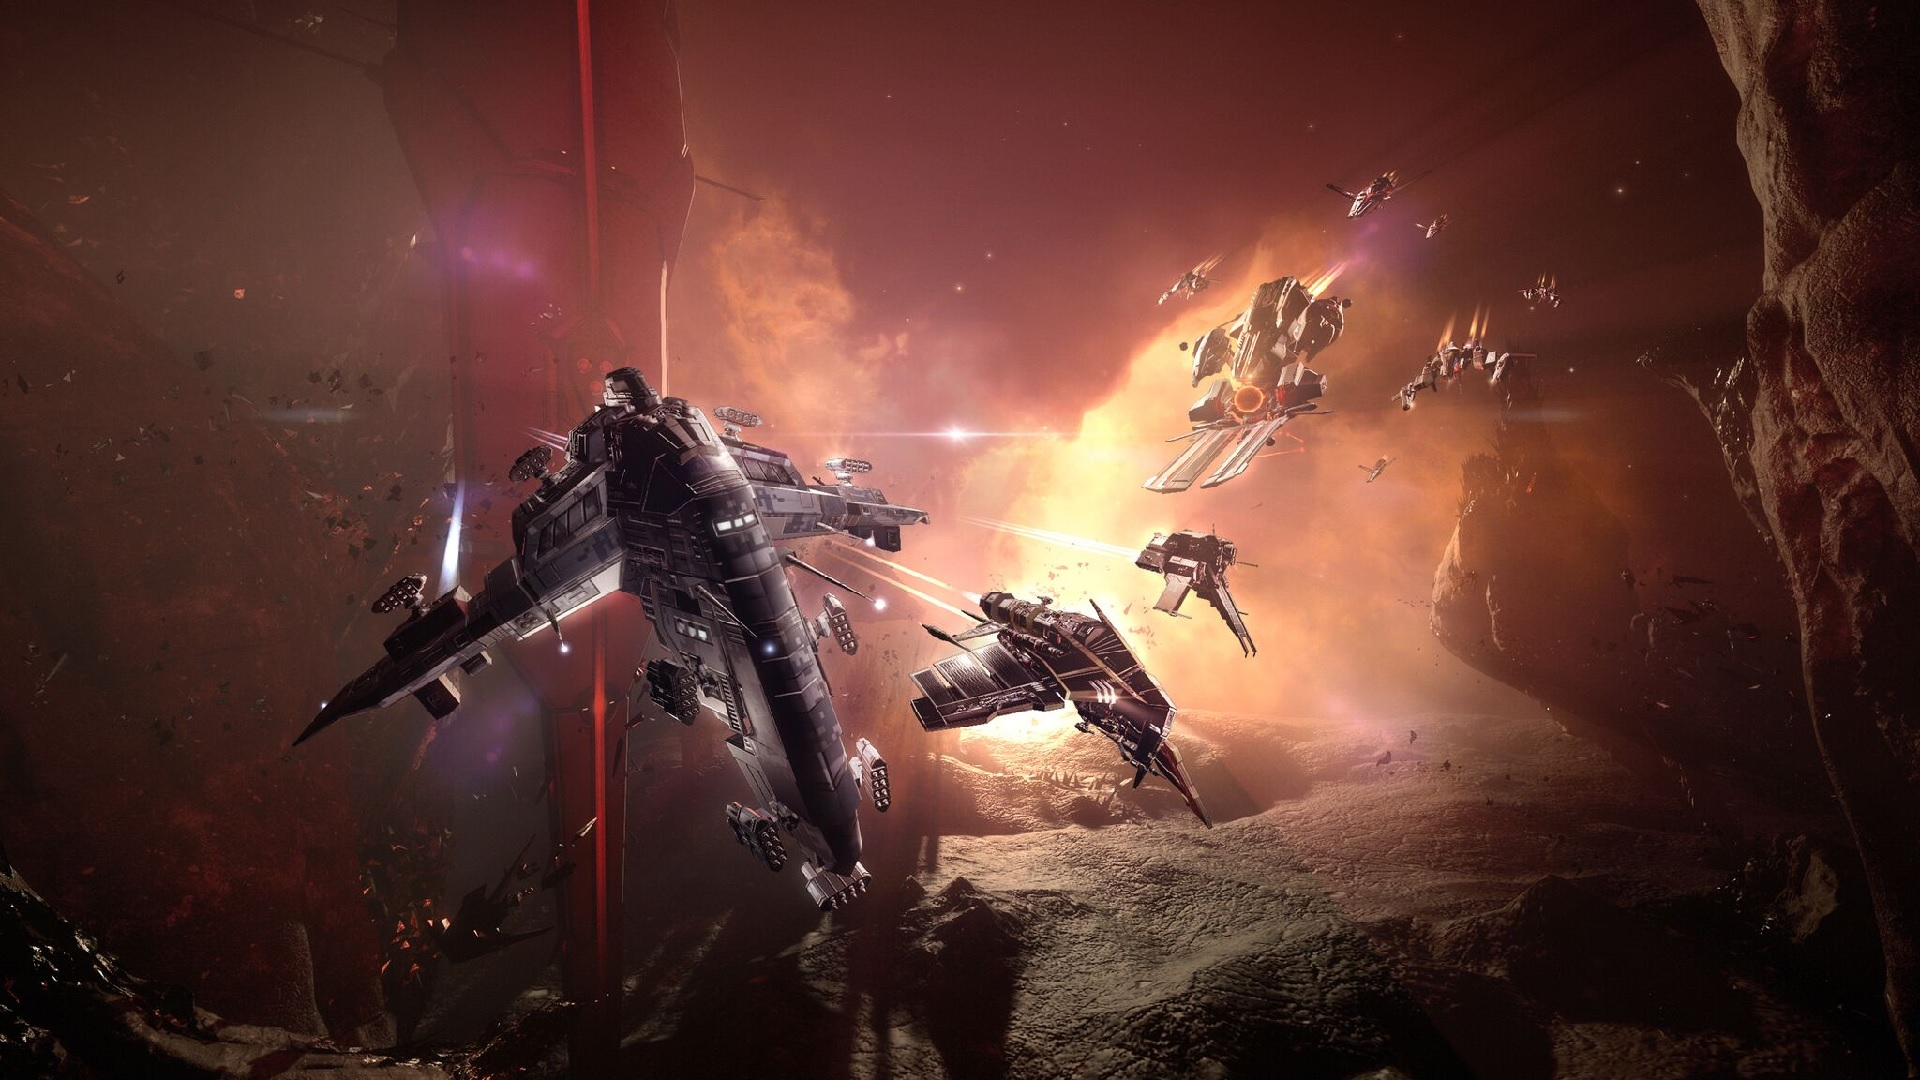 EVE Online's Starter Pack is free on Steam until April 12th | PC Gamer